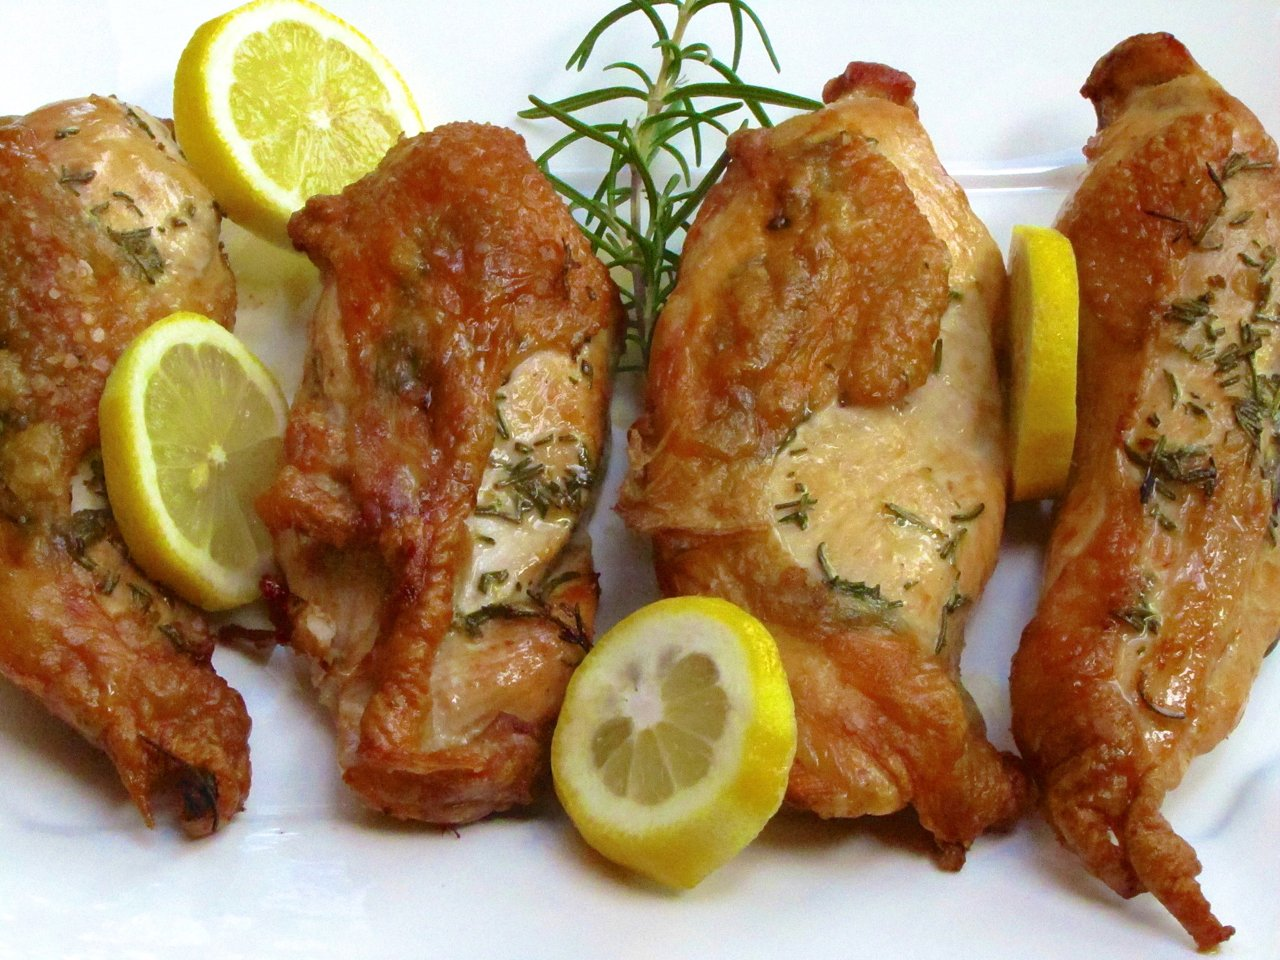 Simple Baked Chicken Breasts with Lemon and Rosemary